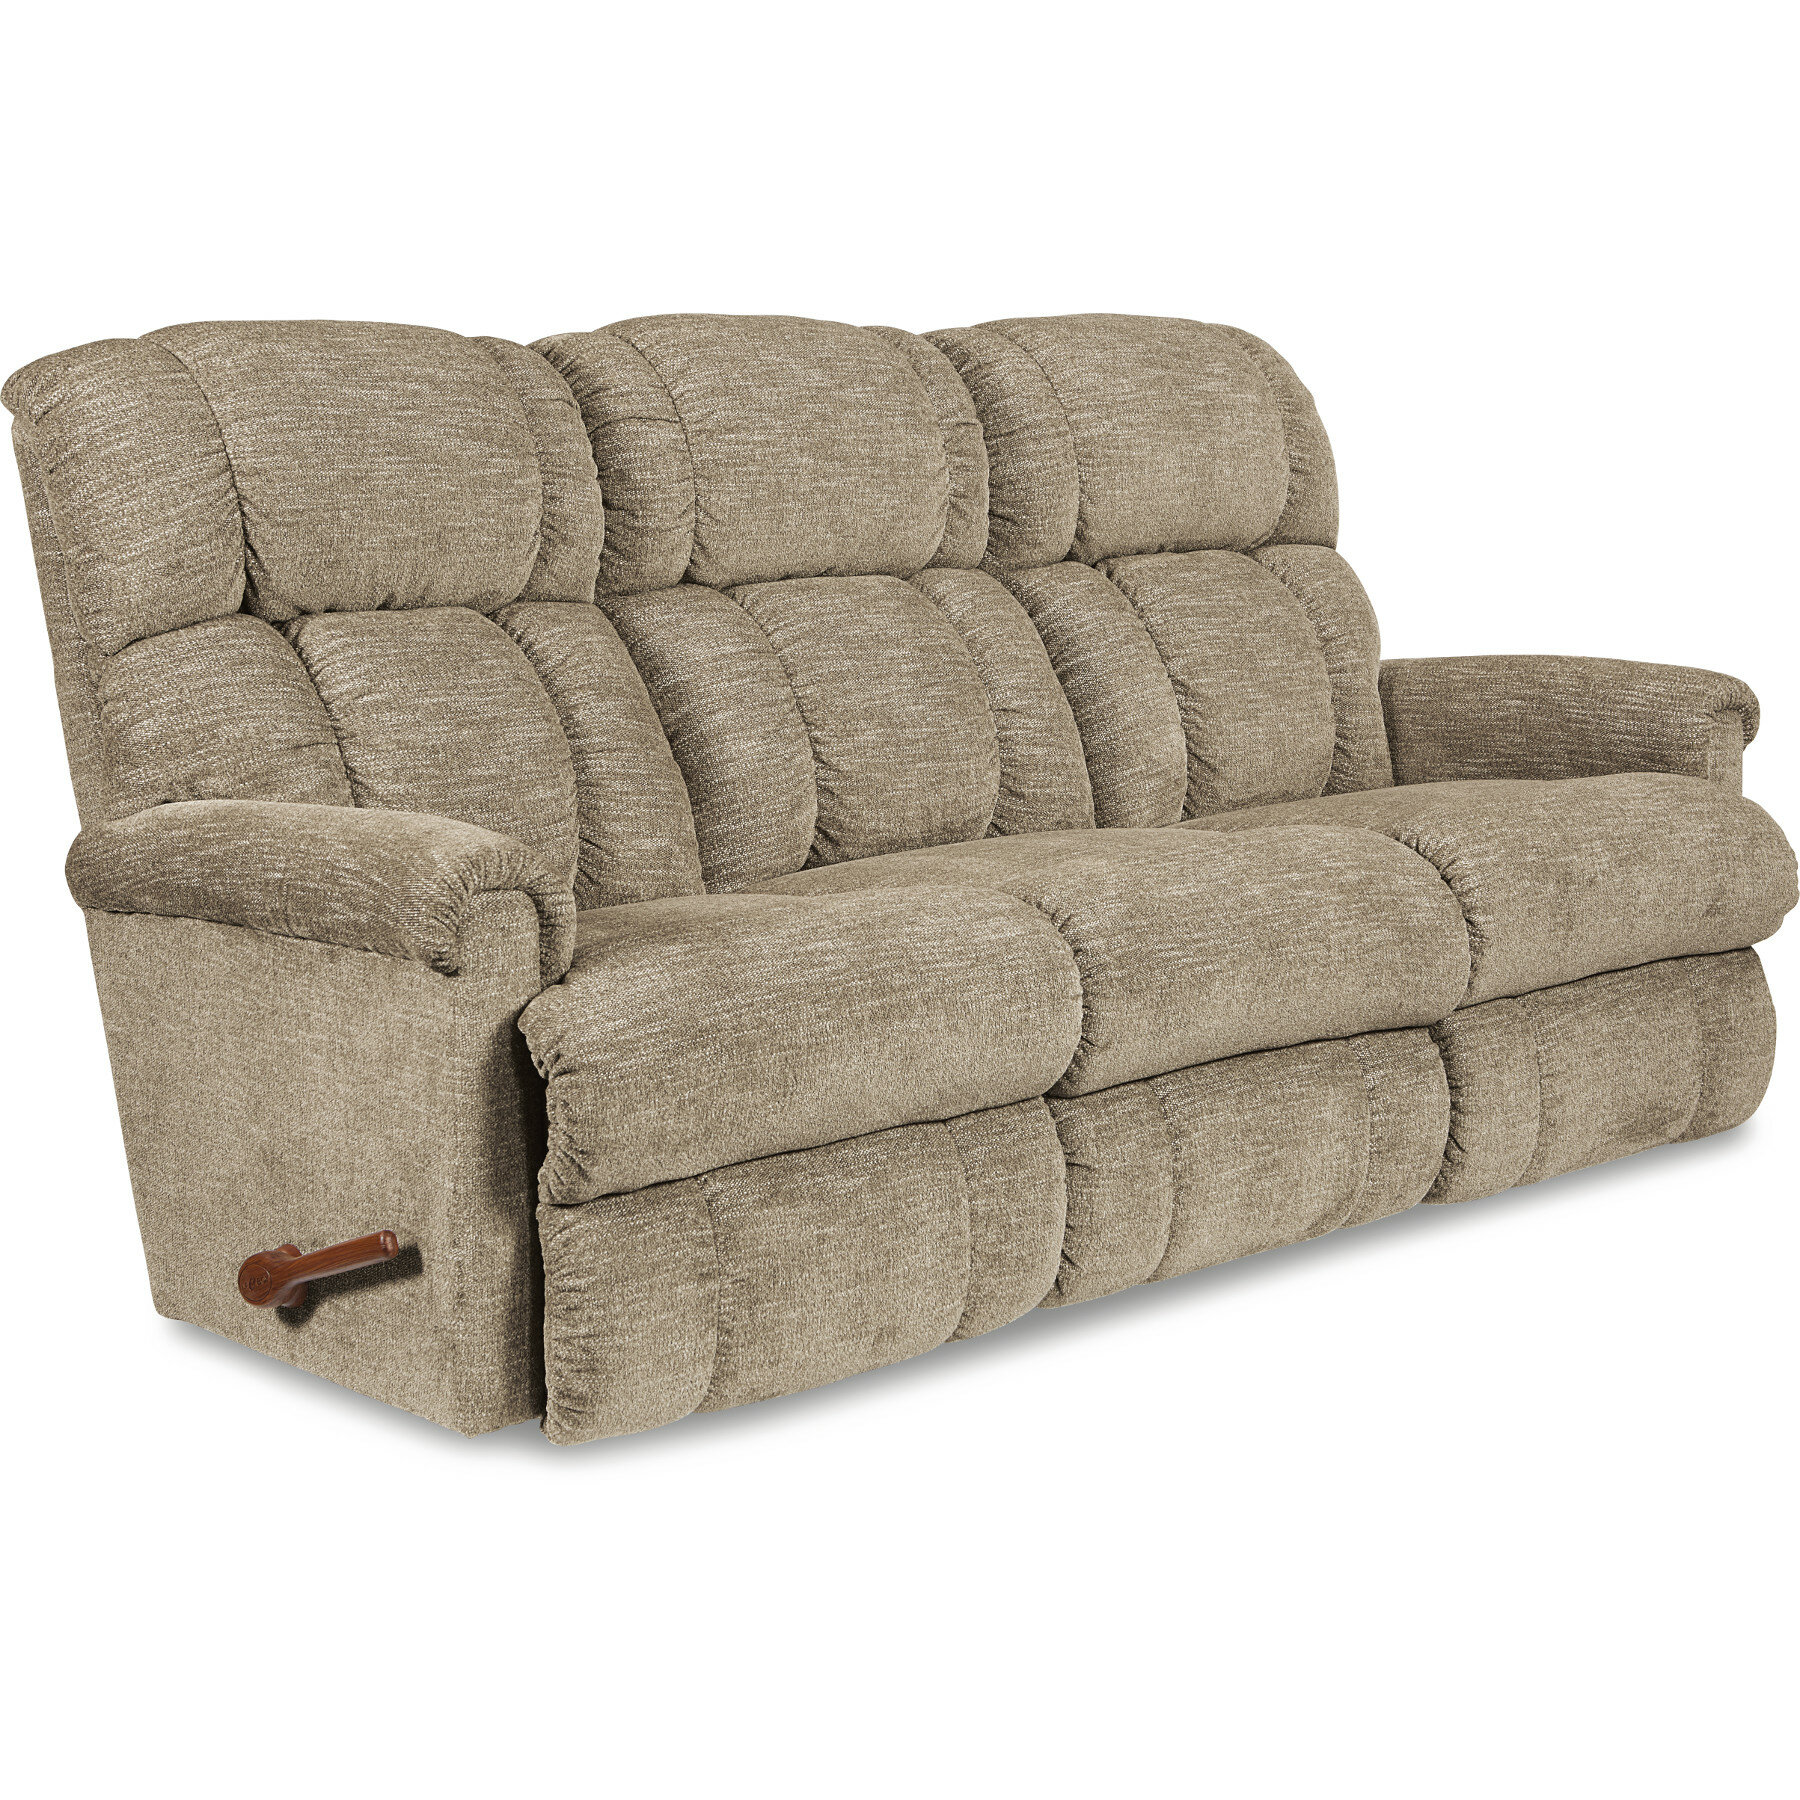 Pinnacle Reclining Sofa (Part Number: 330512 B158062 FN 007)